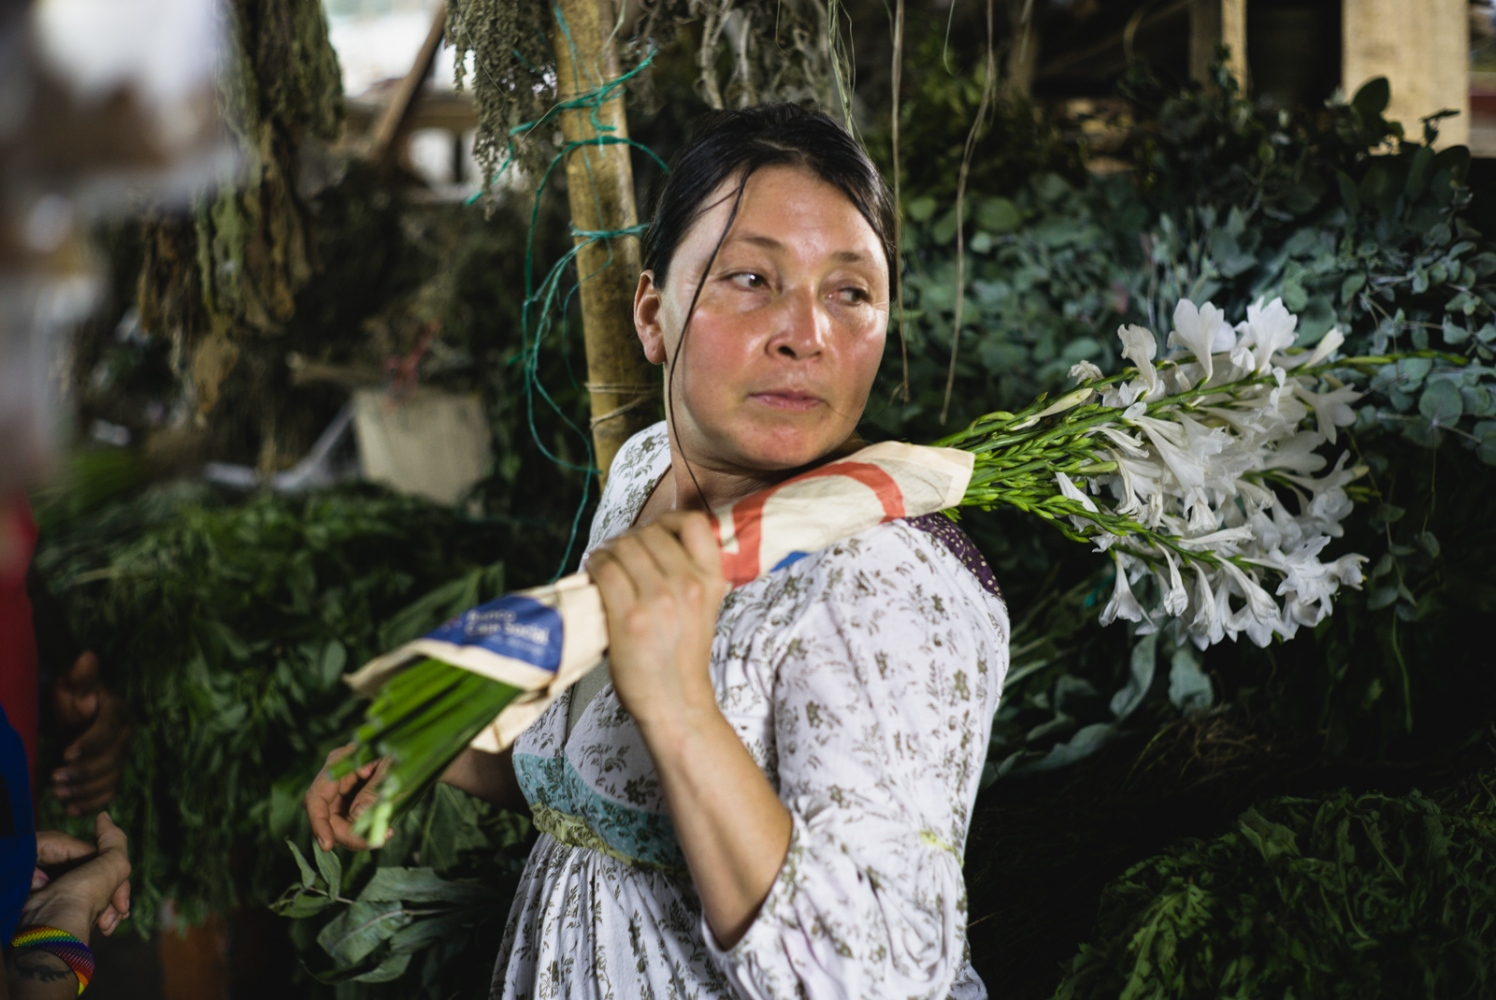 Citlali, a 'yagecera,' or traditional medicine woman, collects flowers and medicinal plants at the local market in Florida, Colombia.